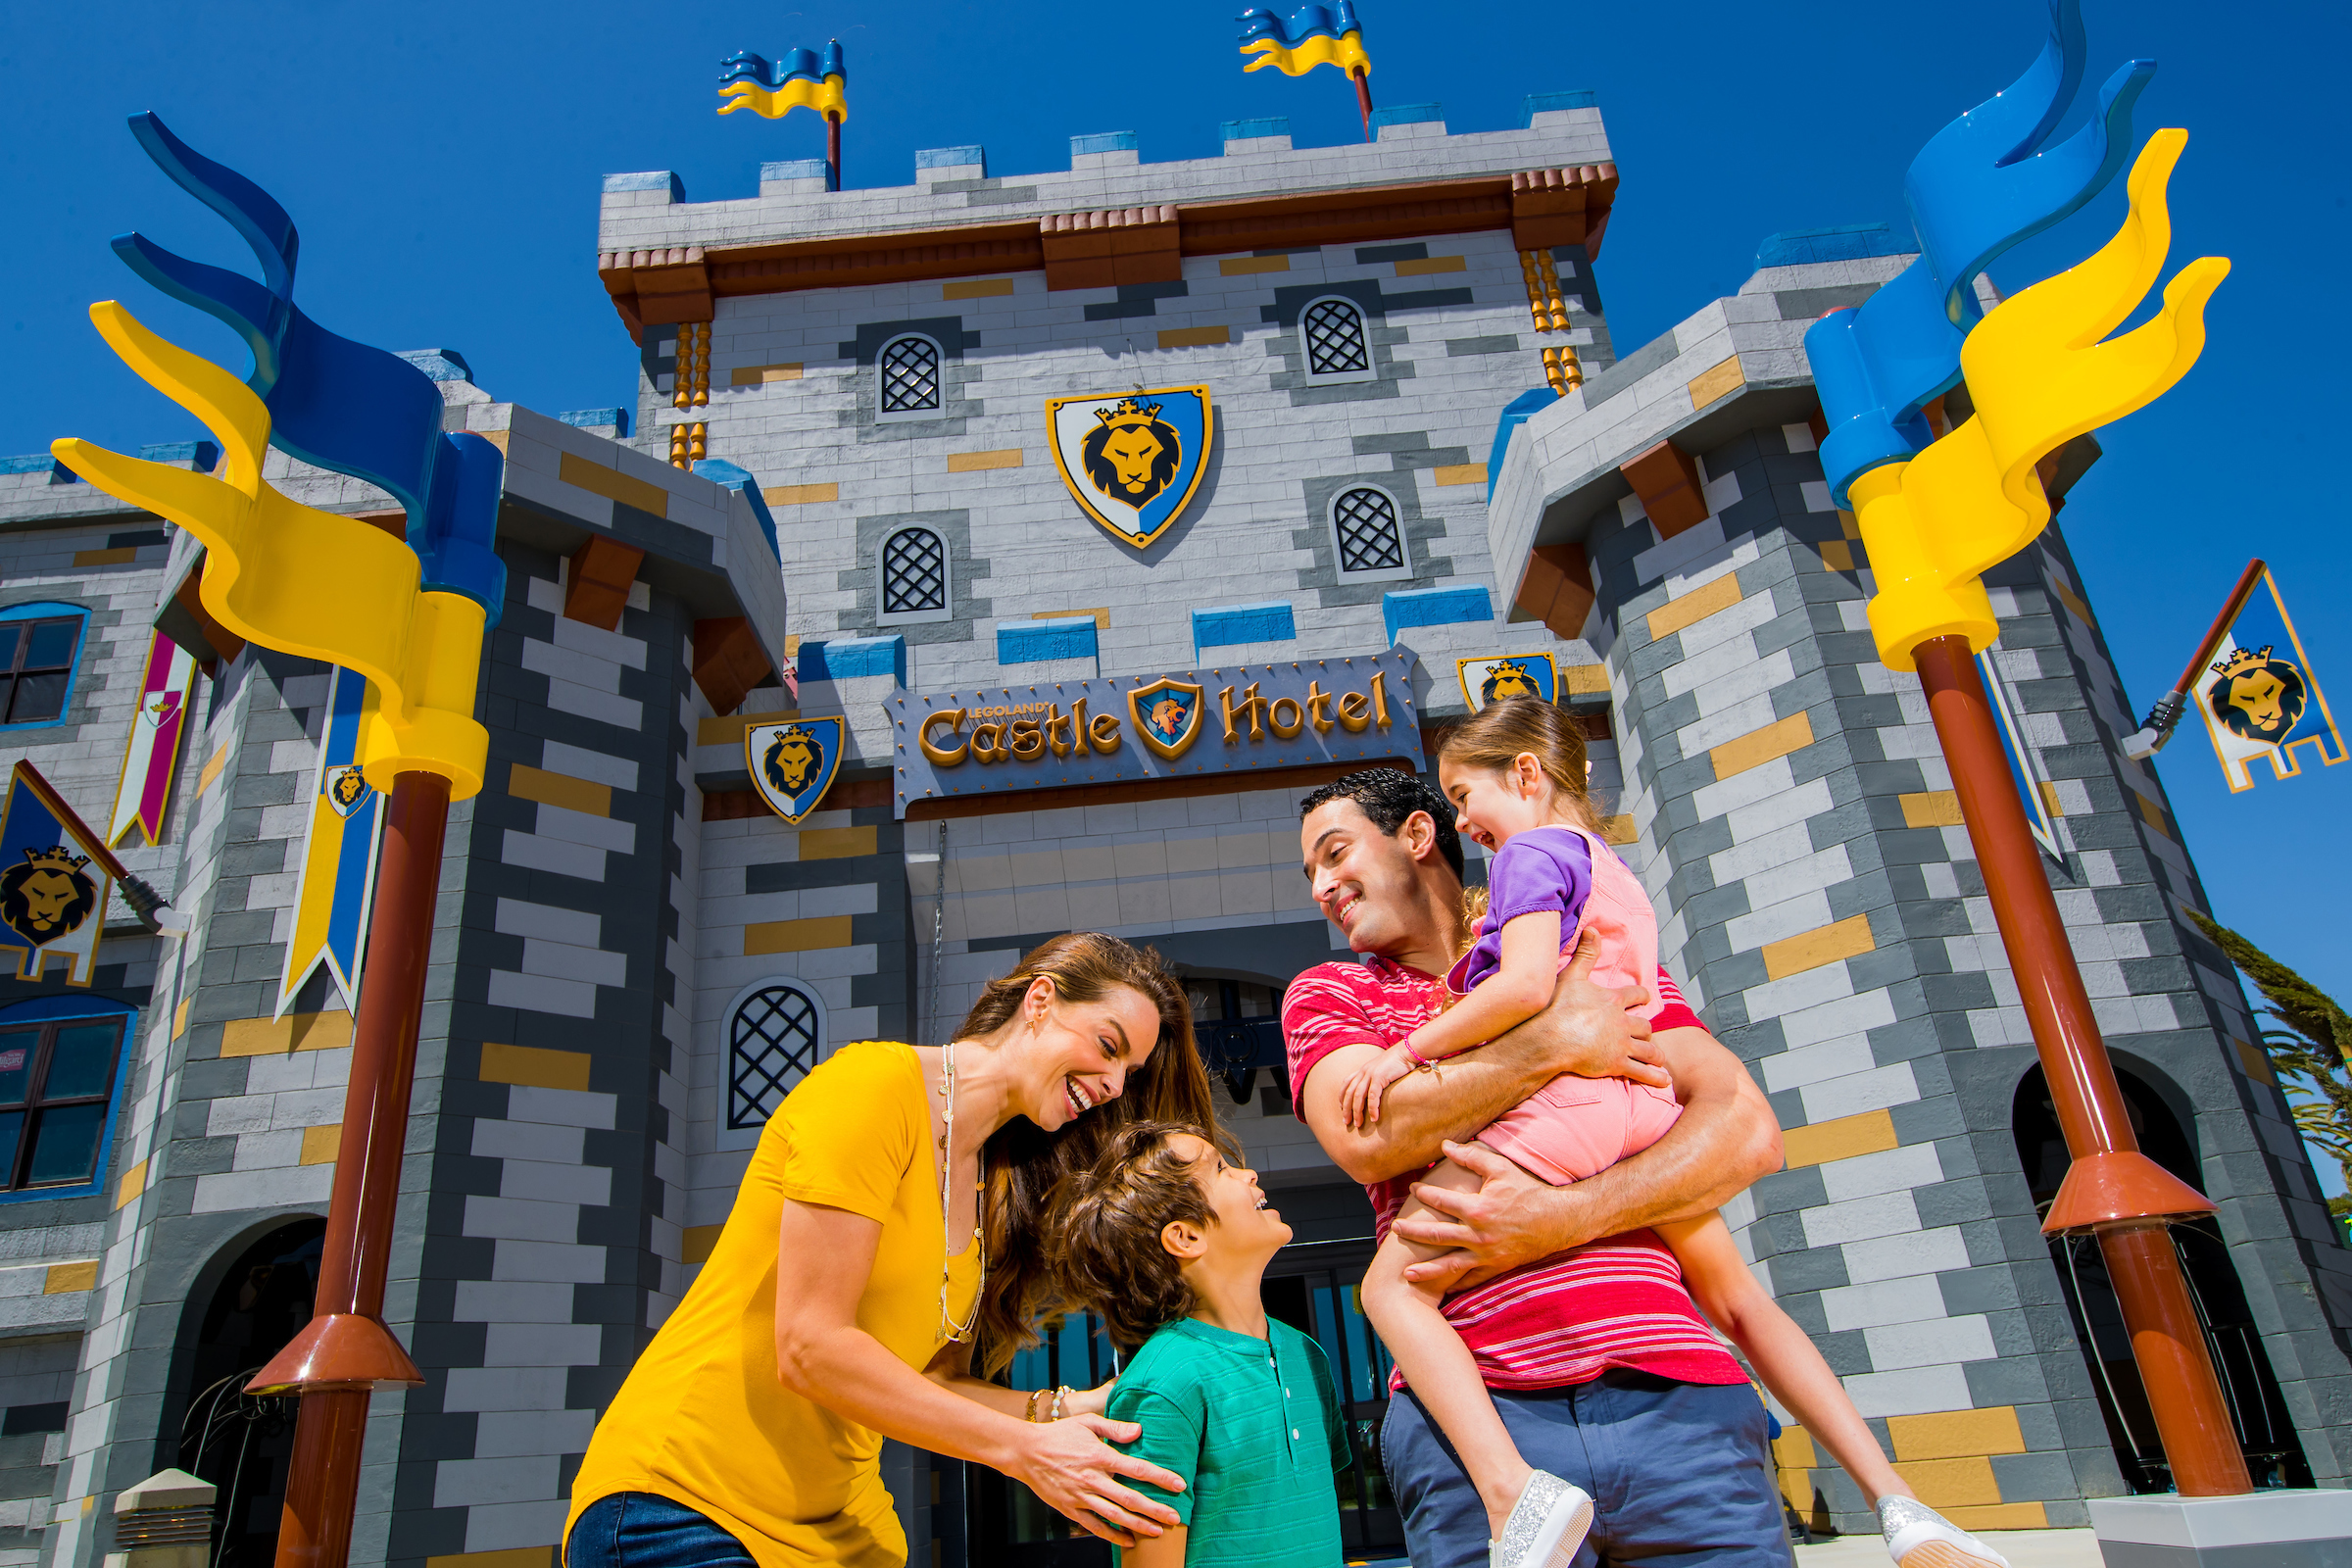 A family gathers in front of LEGOLAND Caslte Hotel